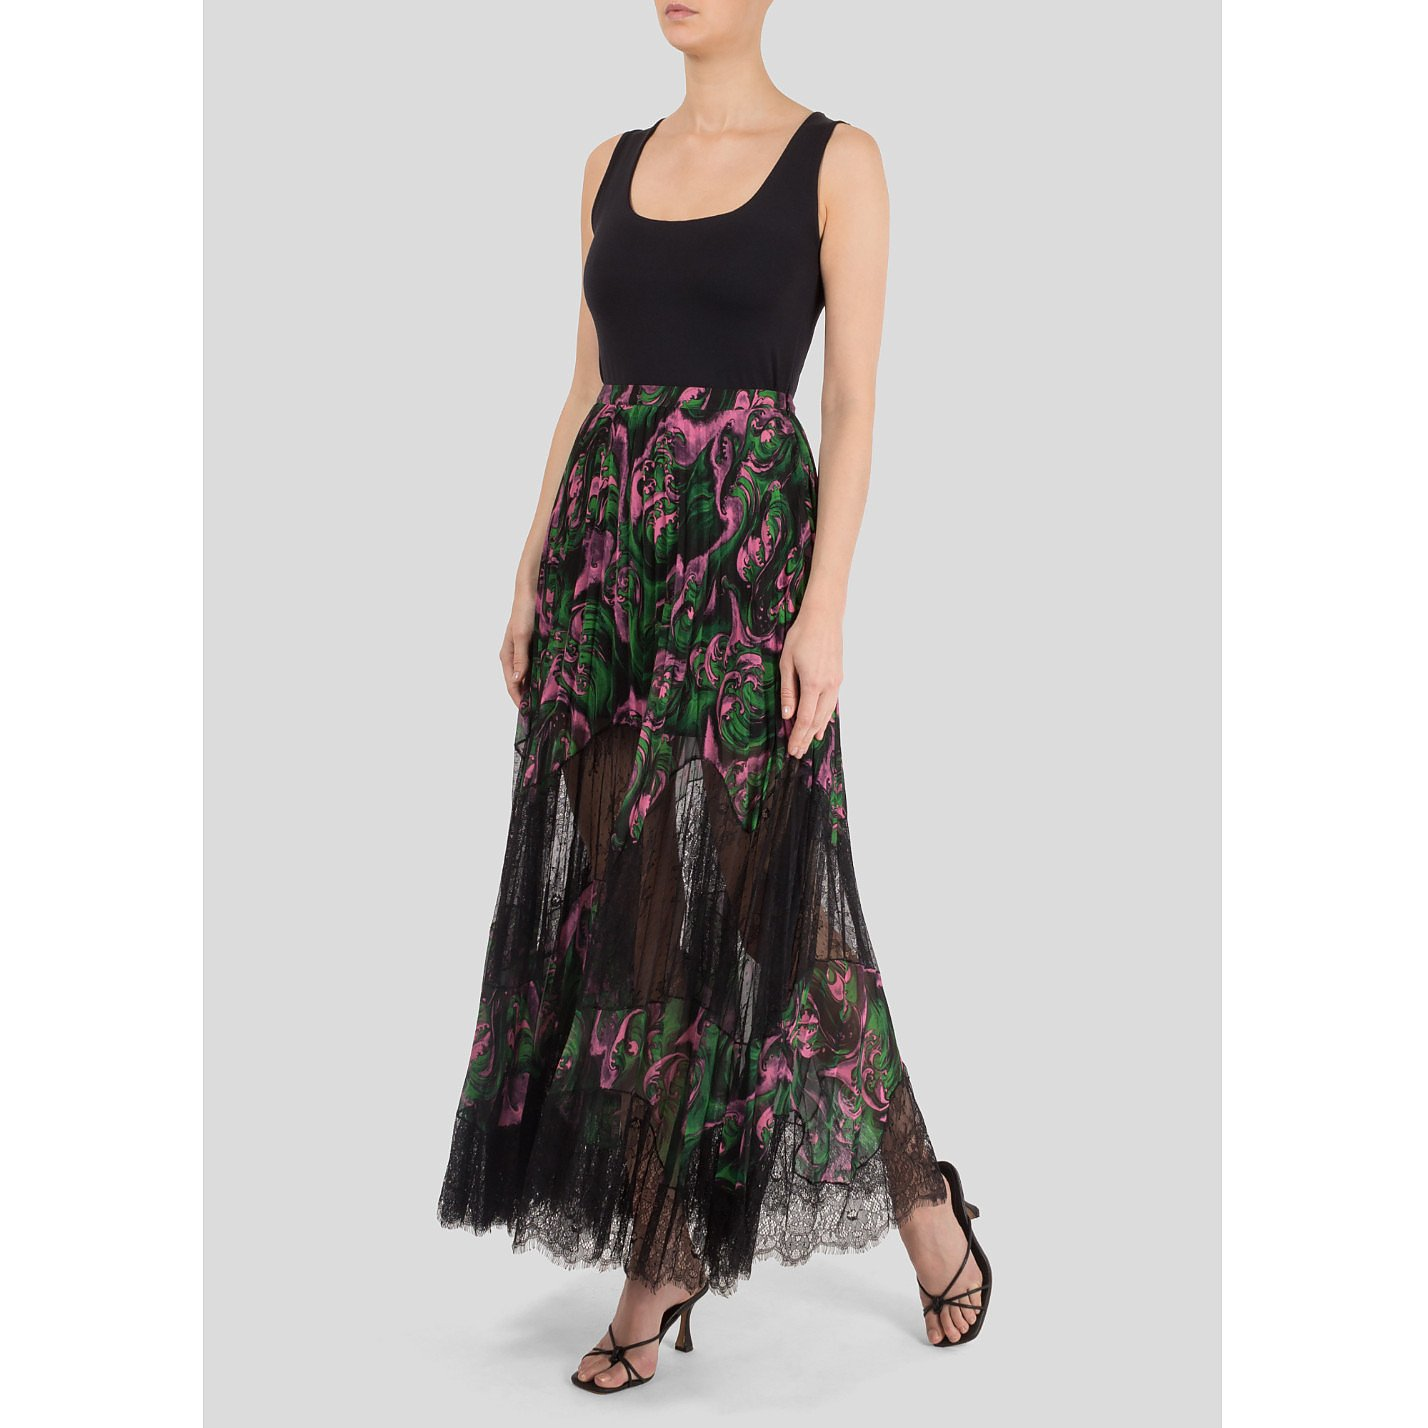 McQ Lace-Panelled Pleated Print Skirt